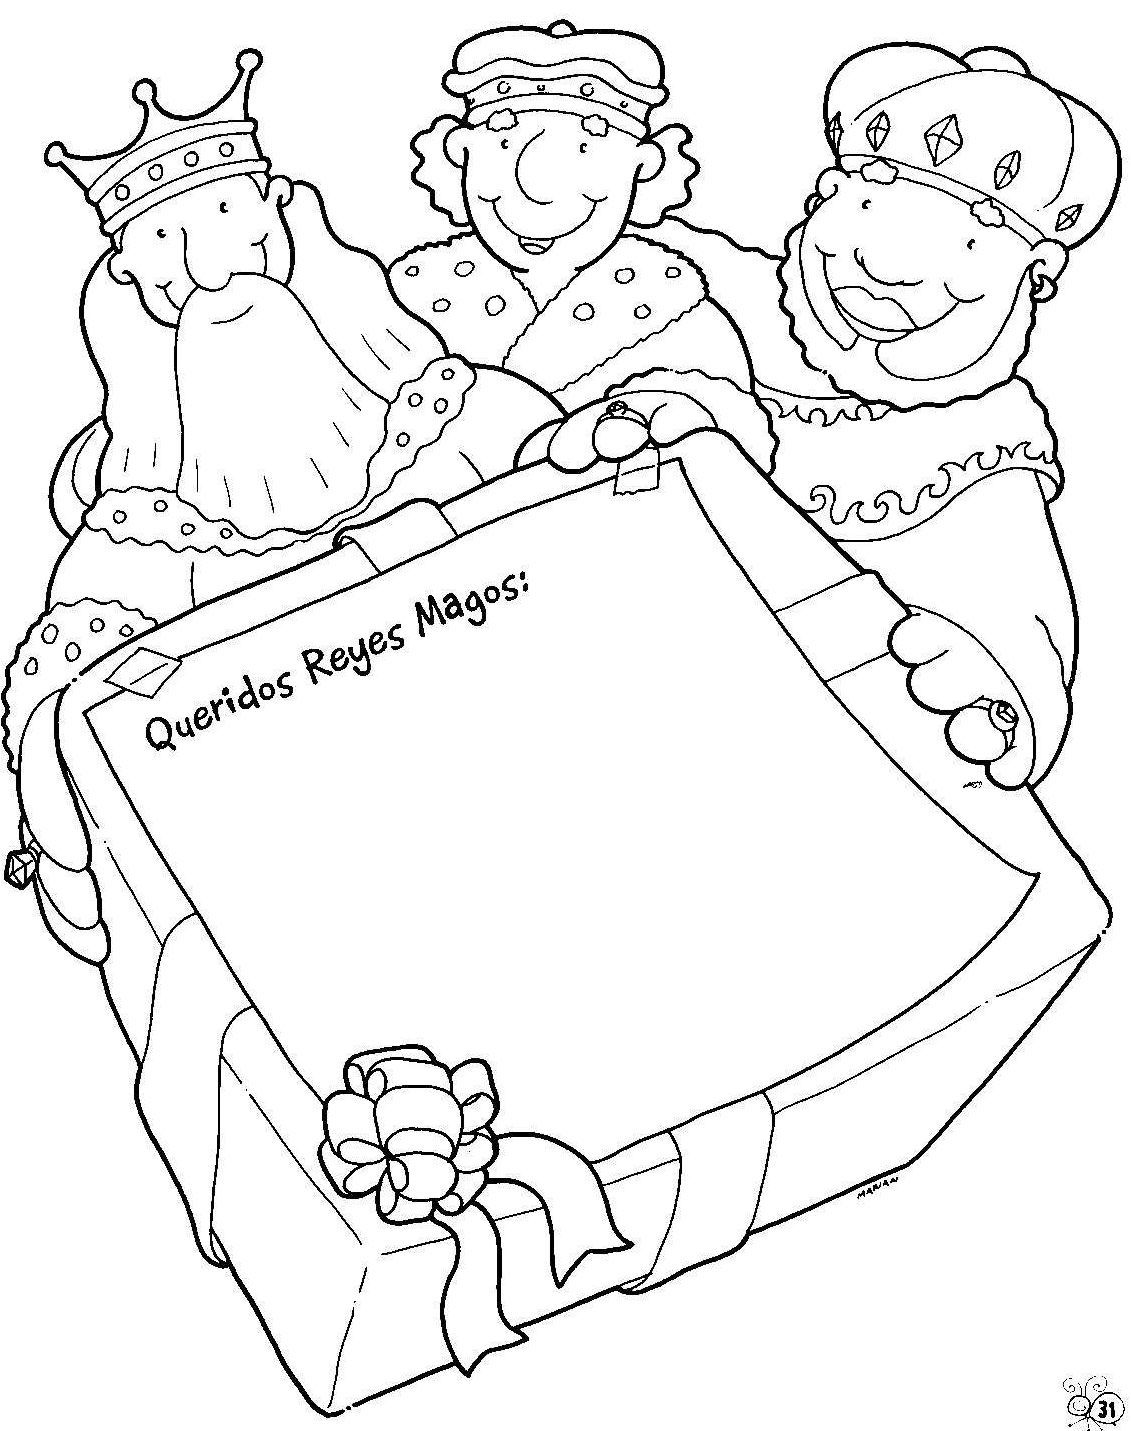 2 kings 5 1 14 coloring pages photo - 1